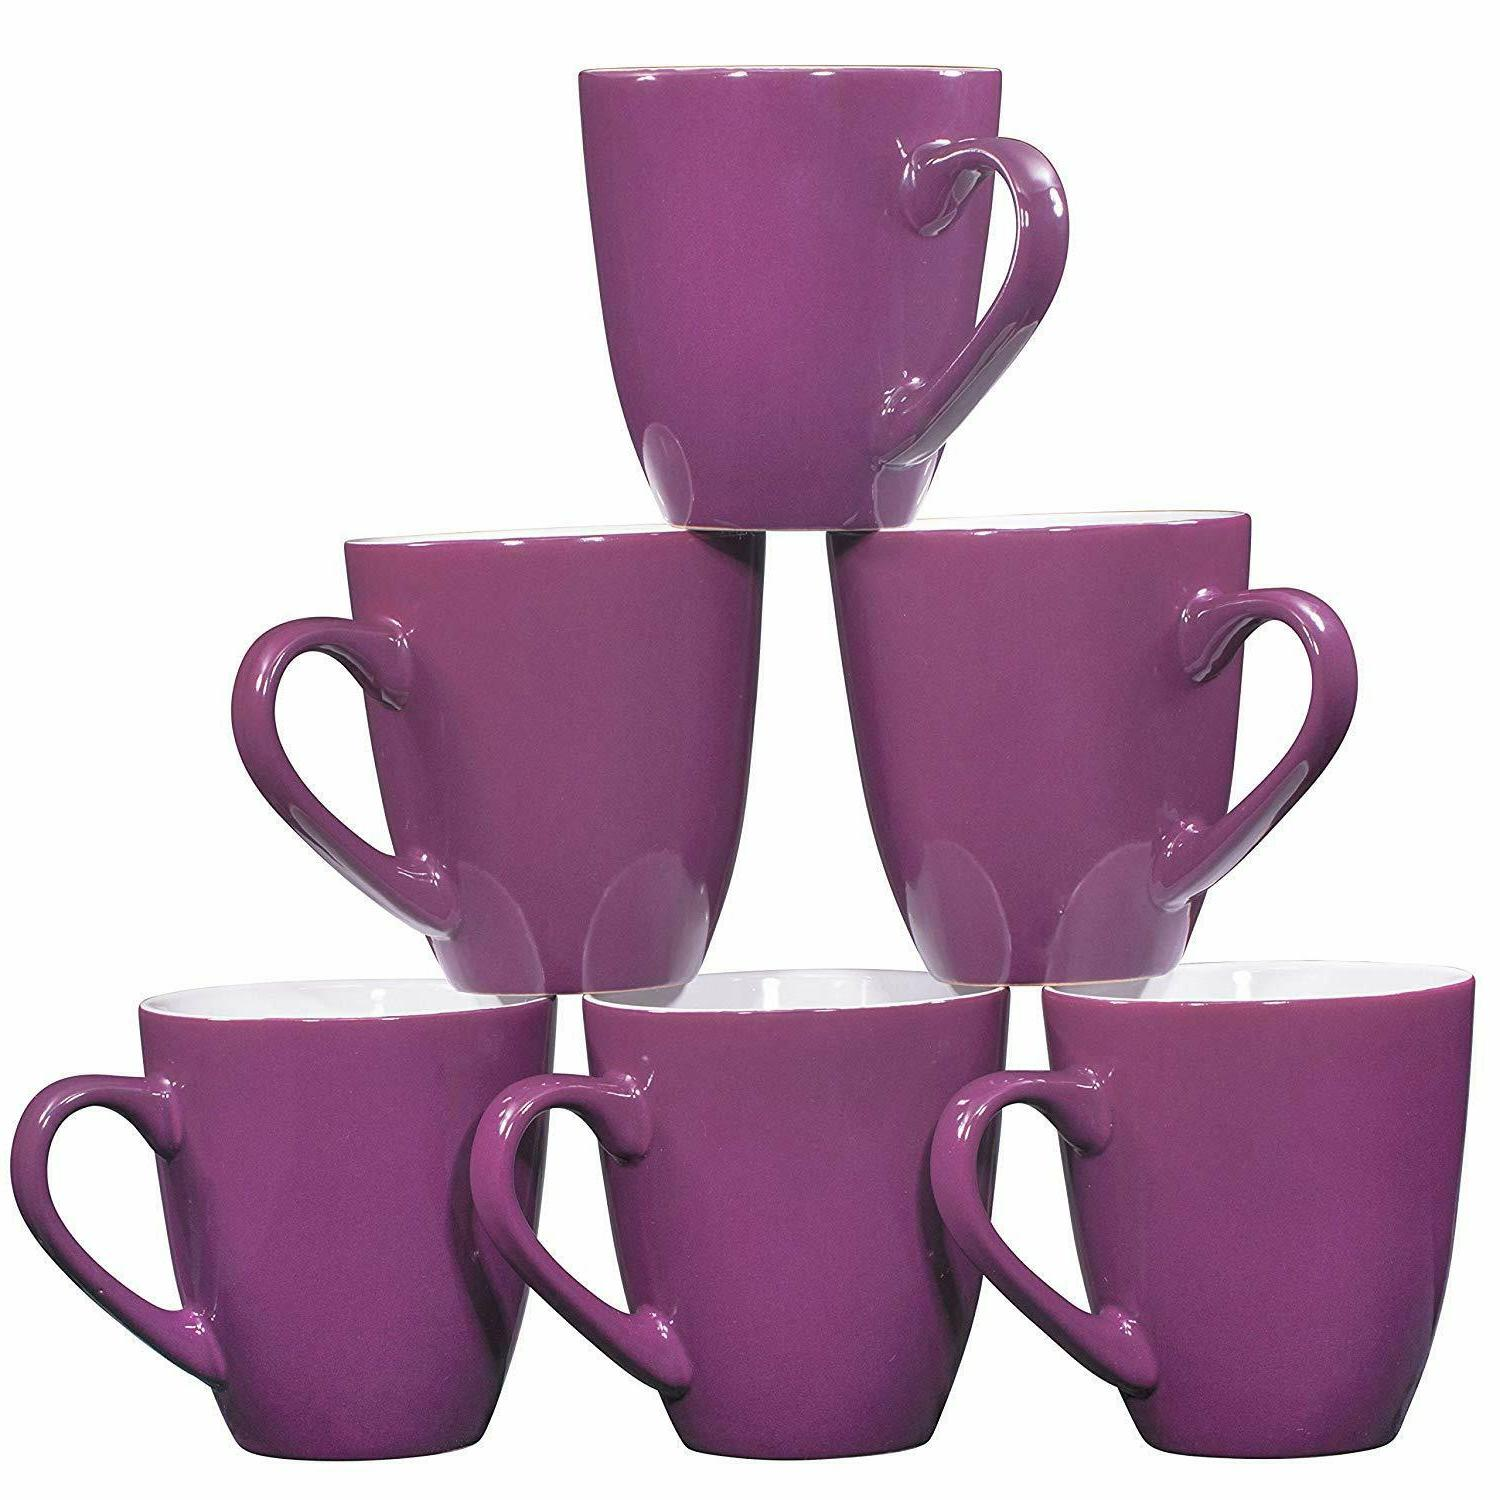 Bruntmor Mugs Set of Large Tea Coffee Mug Purple